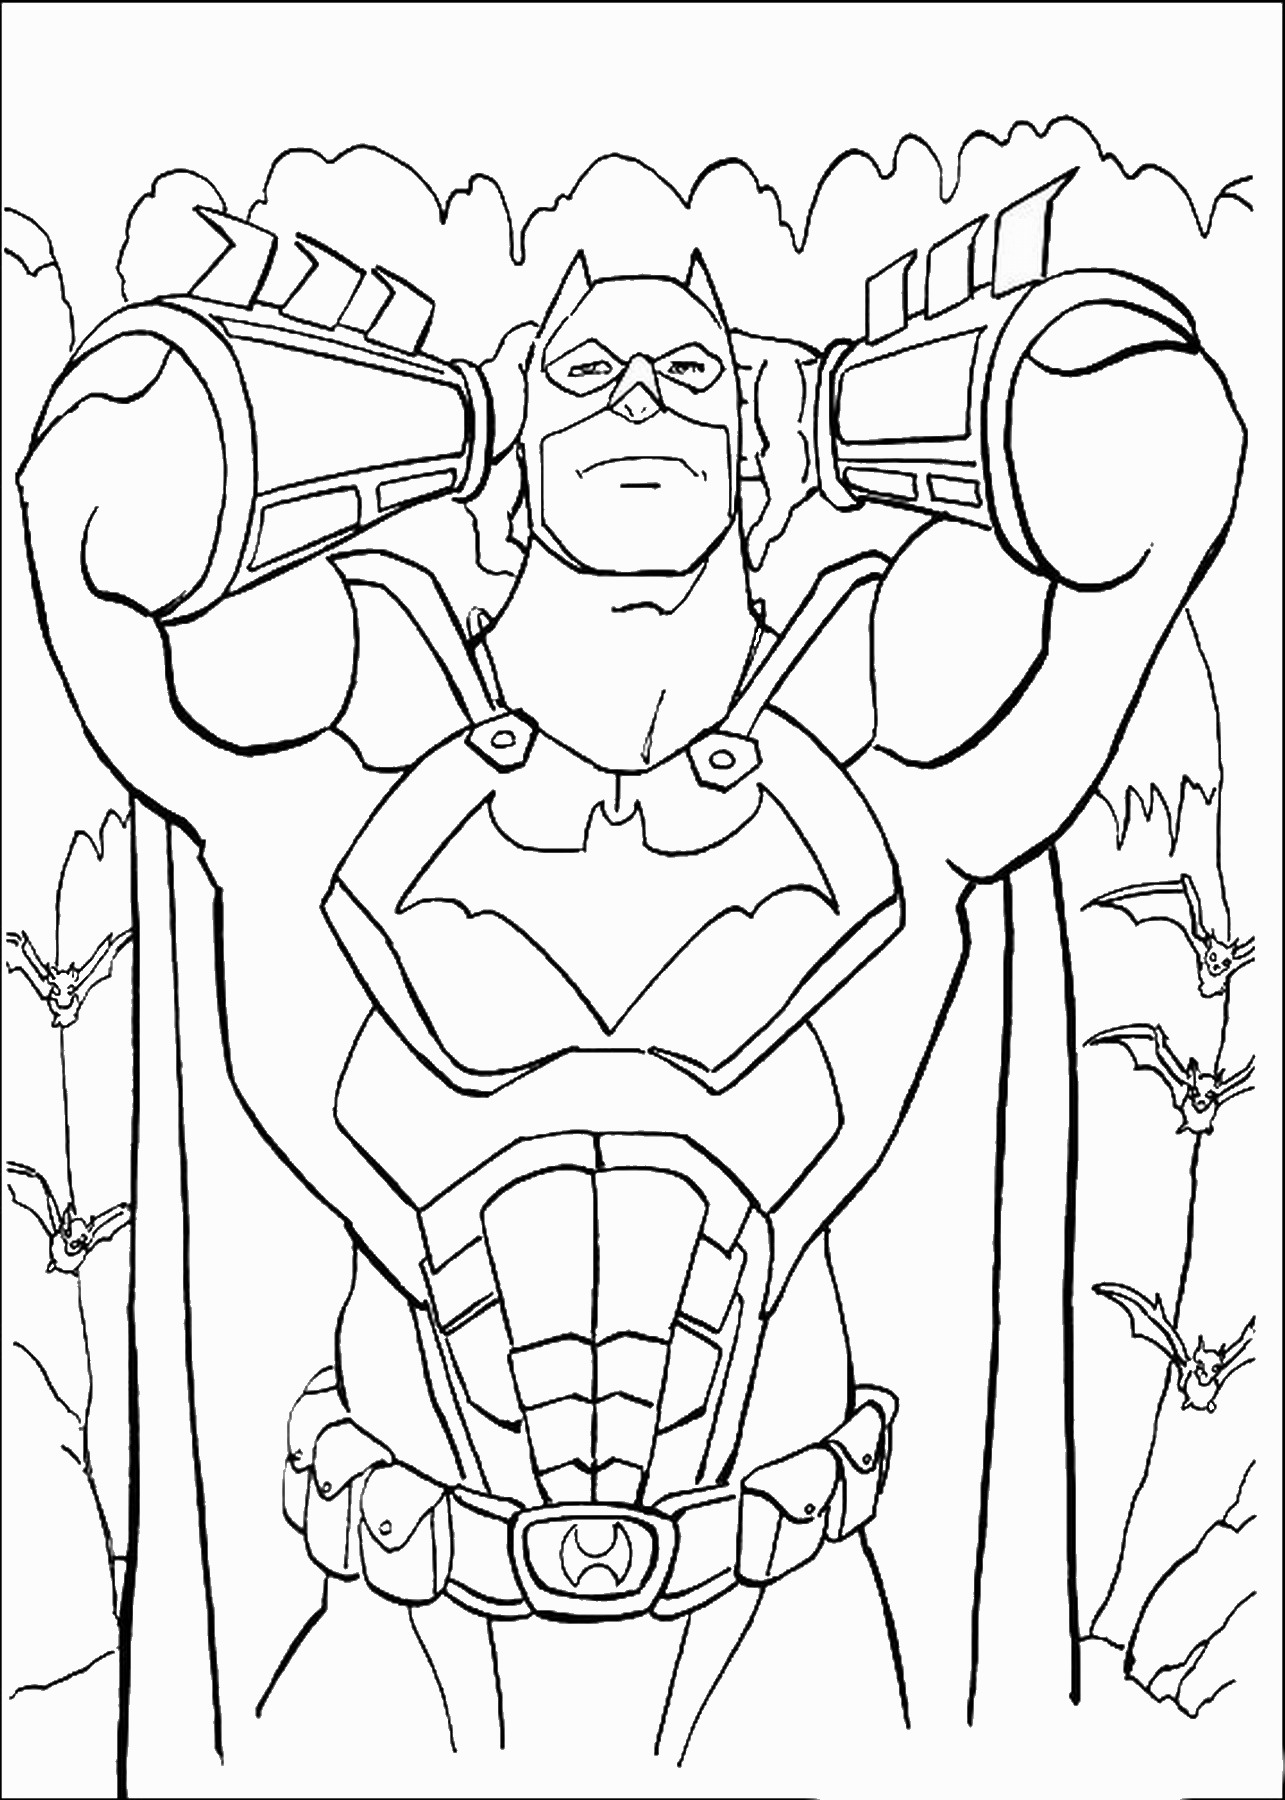 coloring batman printable print download batman coloring pages for your children batman printable coloring